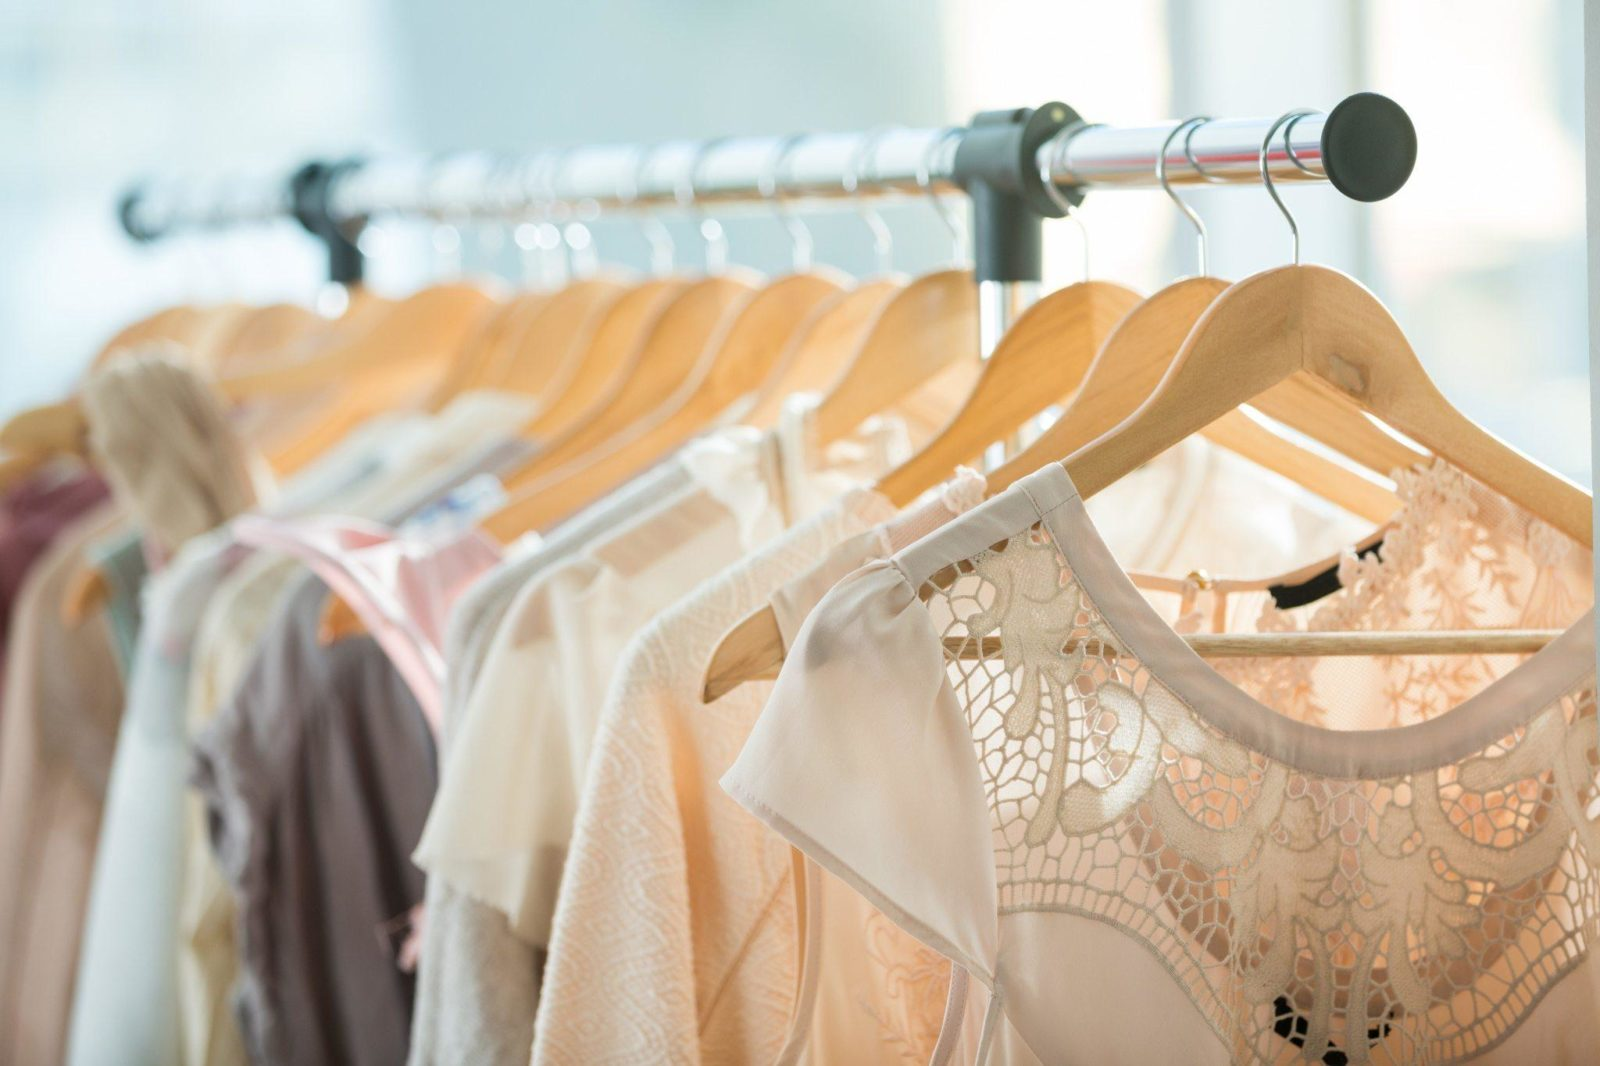 Set of light colored dresses on a wooden hangers